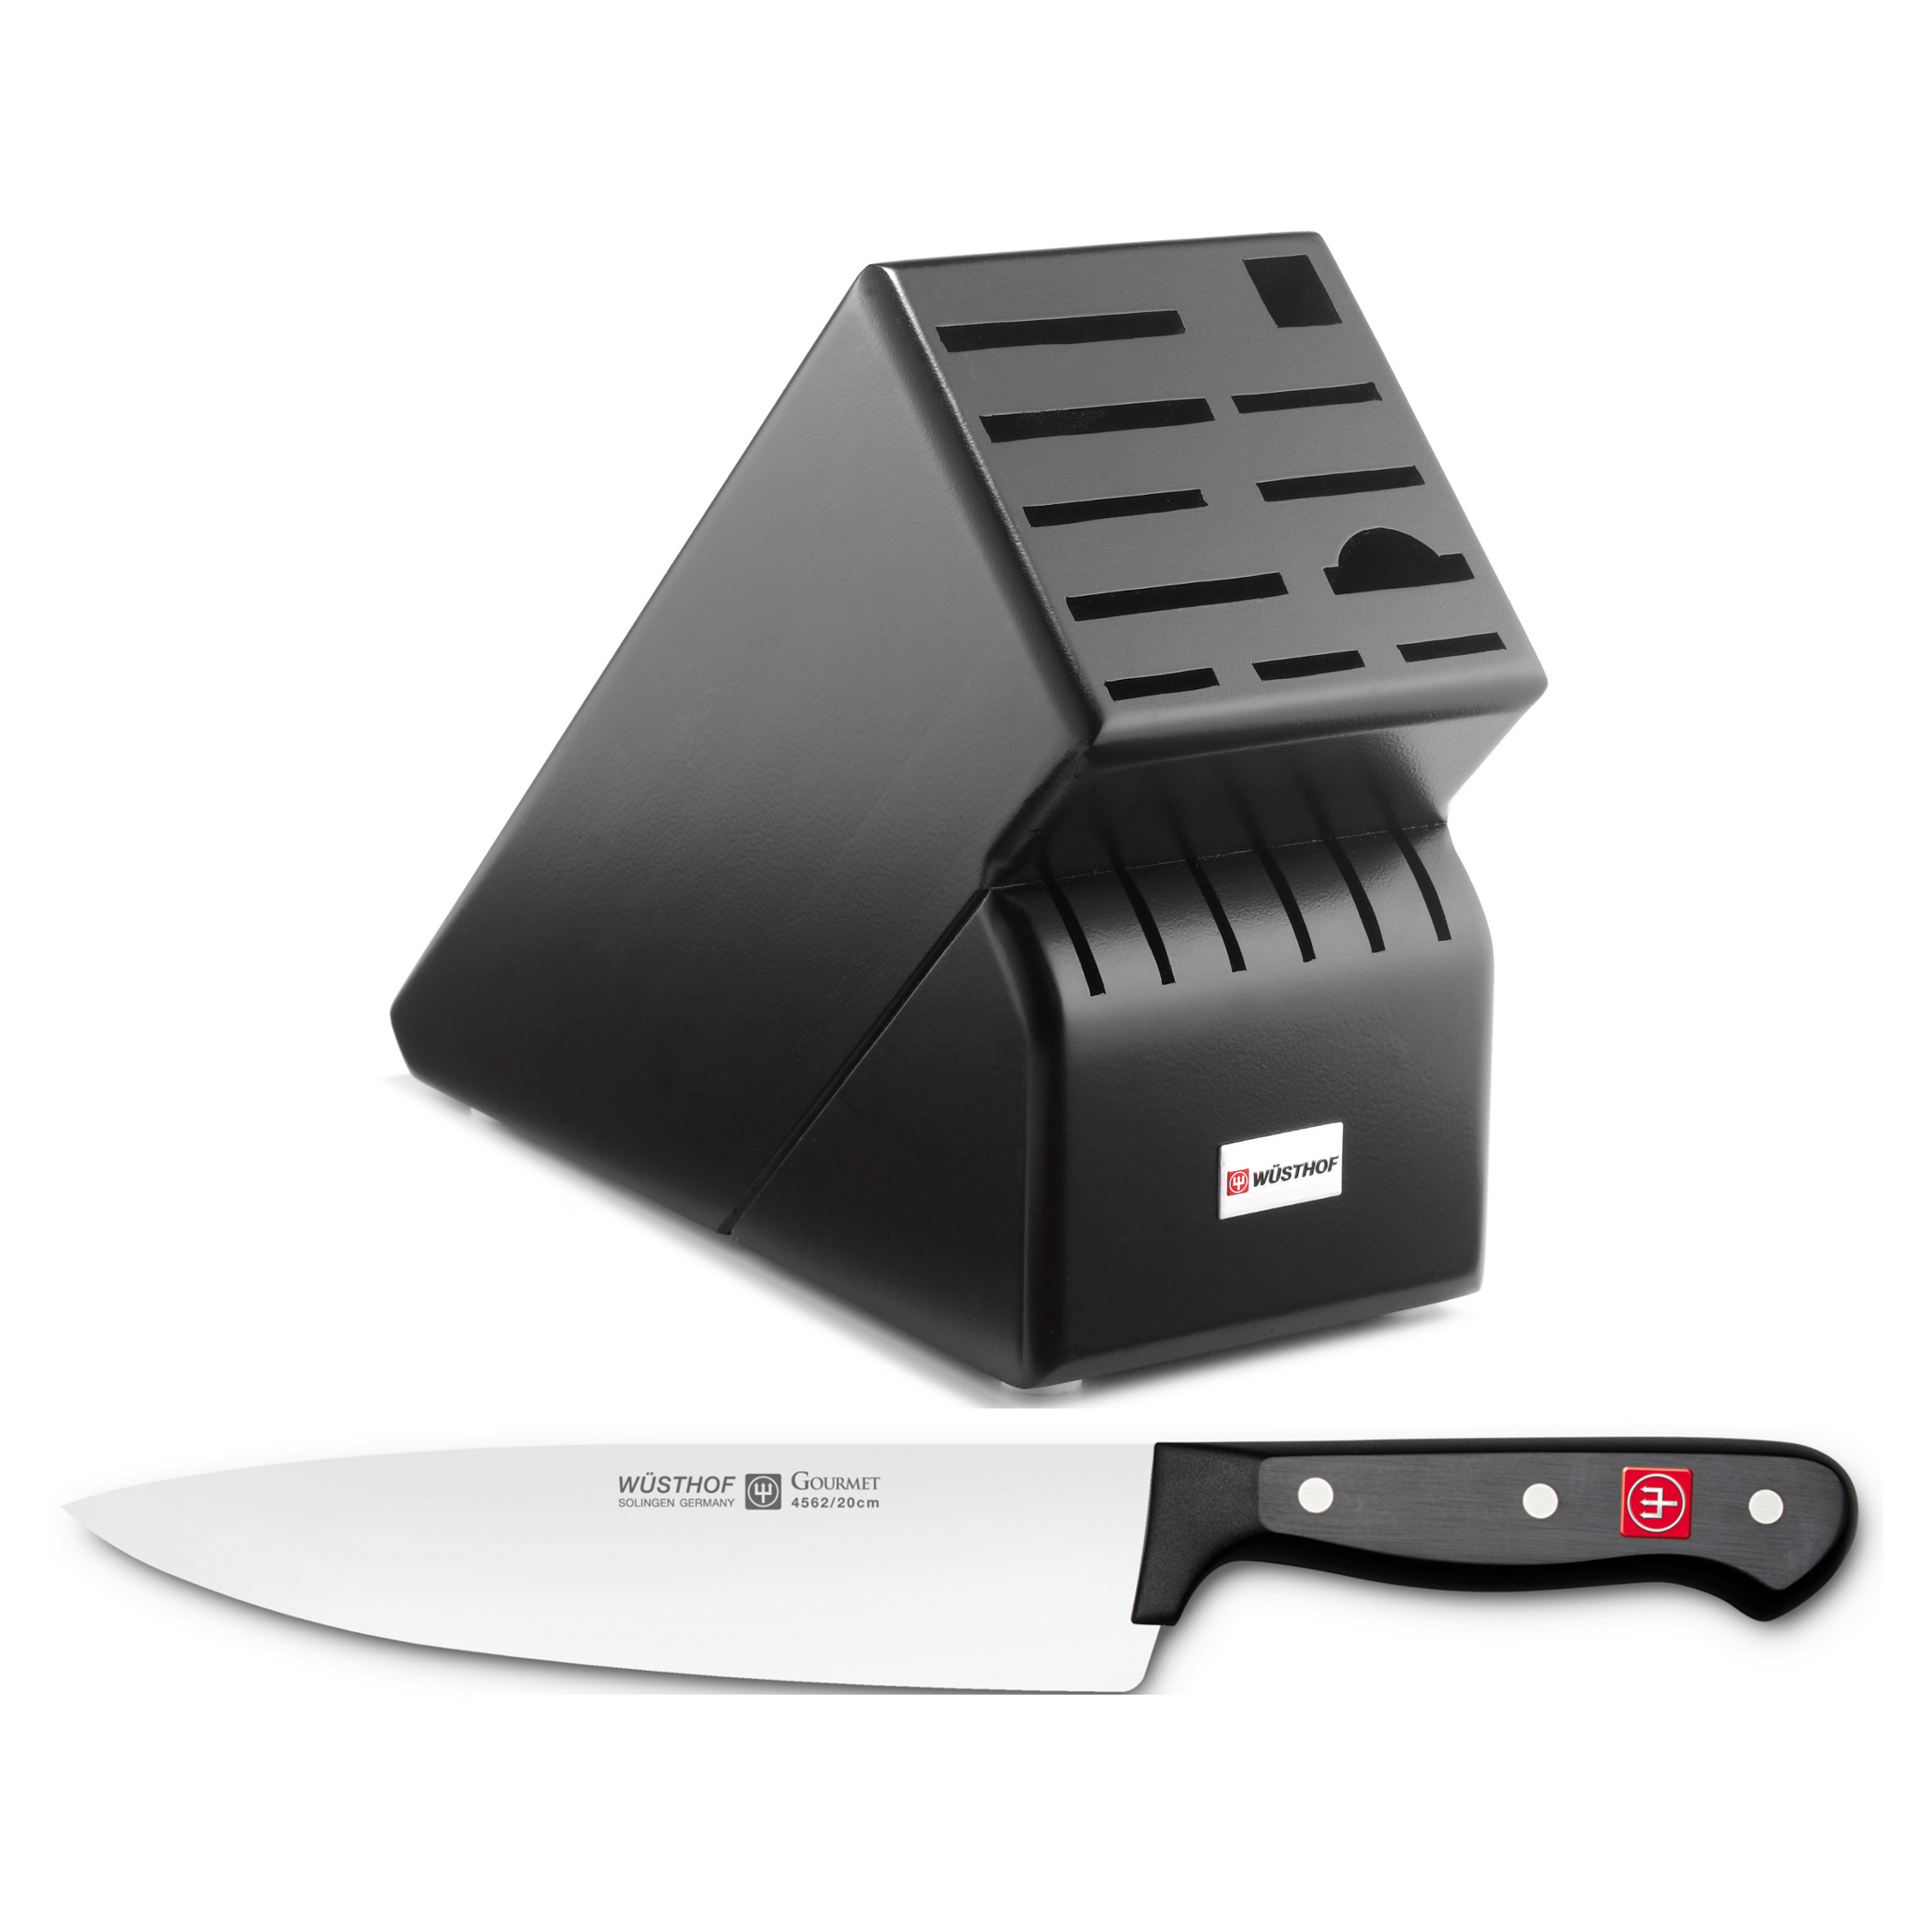 Wusthof Blackwood 17-Slot Knife Block with Gourmet Steel 8 Inch Cook's Knife